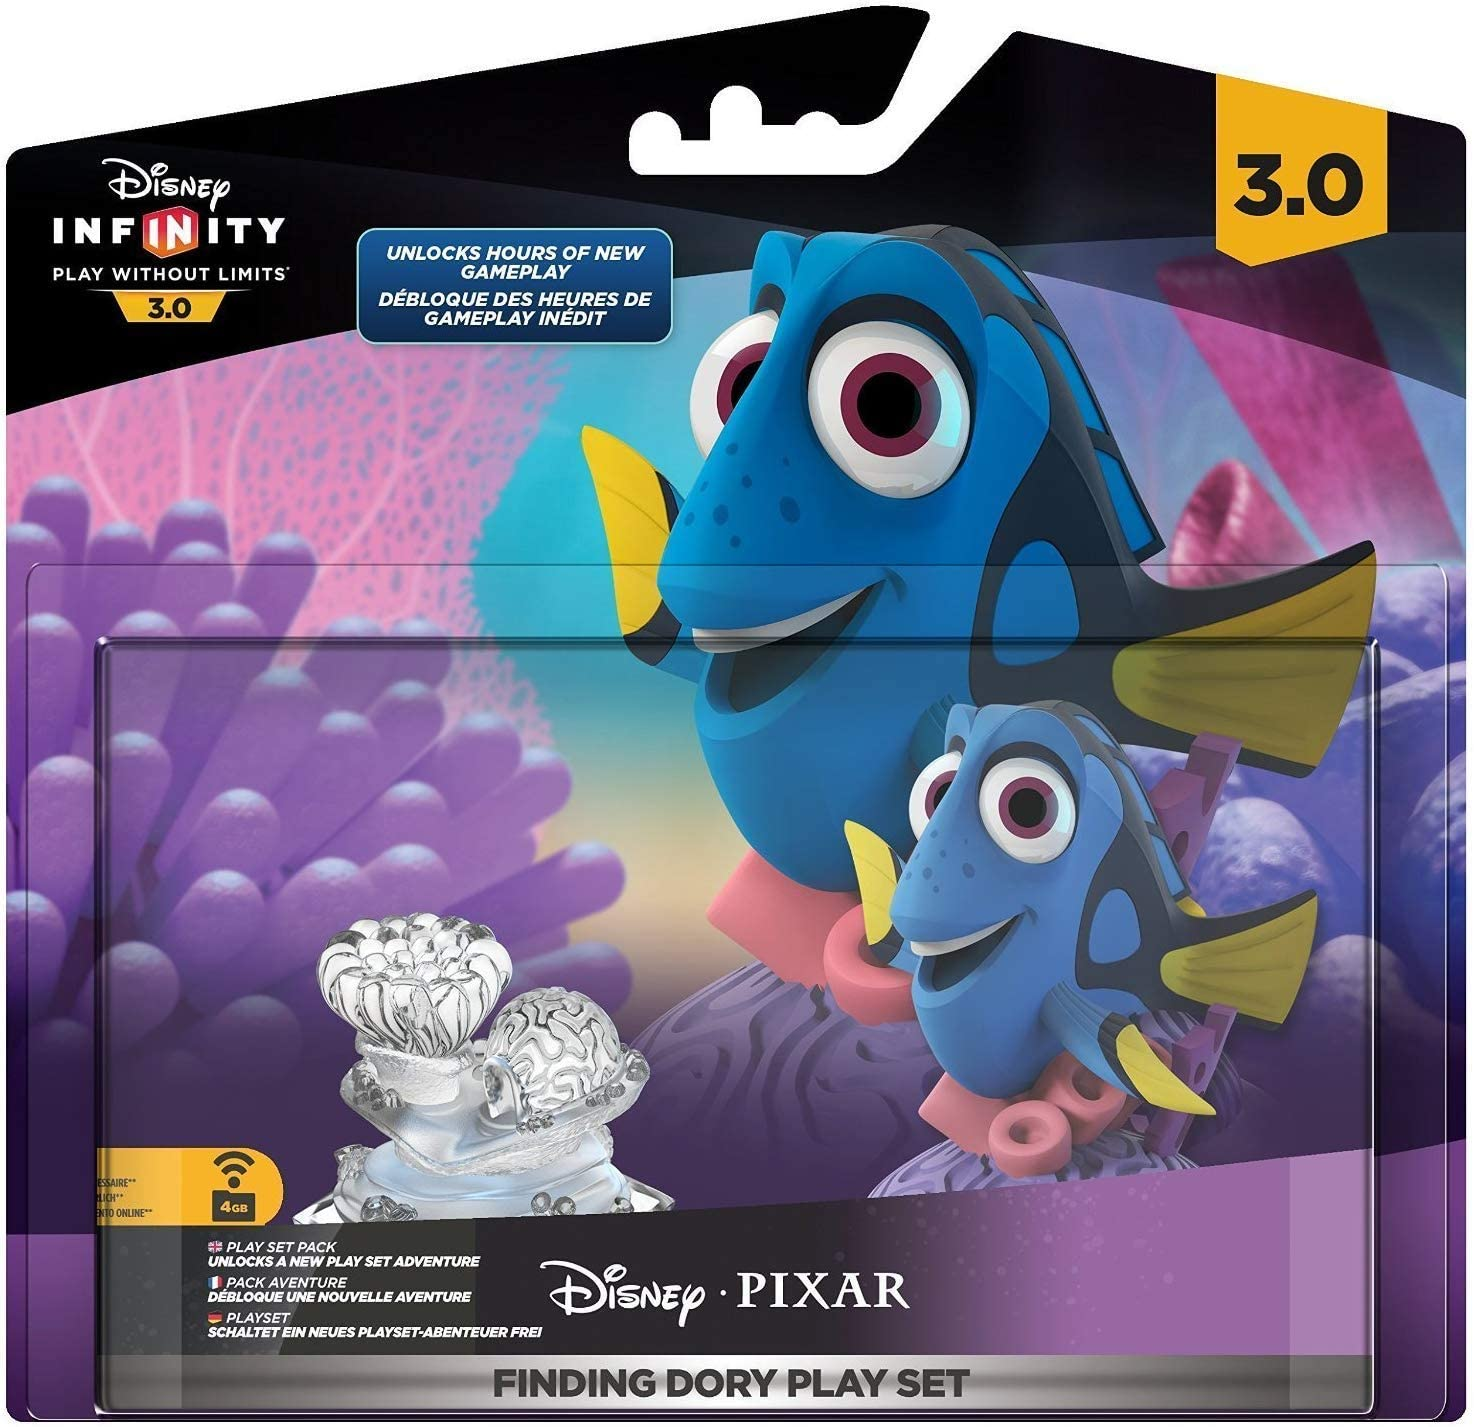 Finding Dory Play Set Brand New Edition 3.0  Action Figure Disney interactive